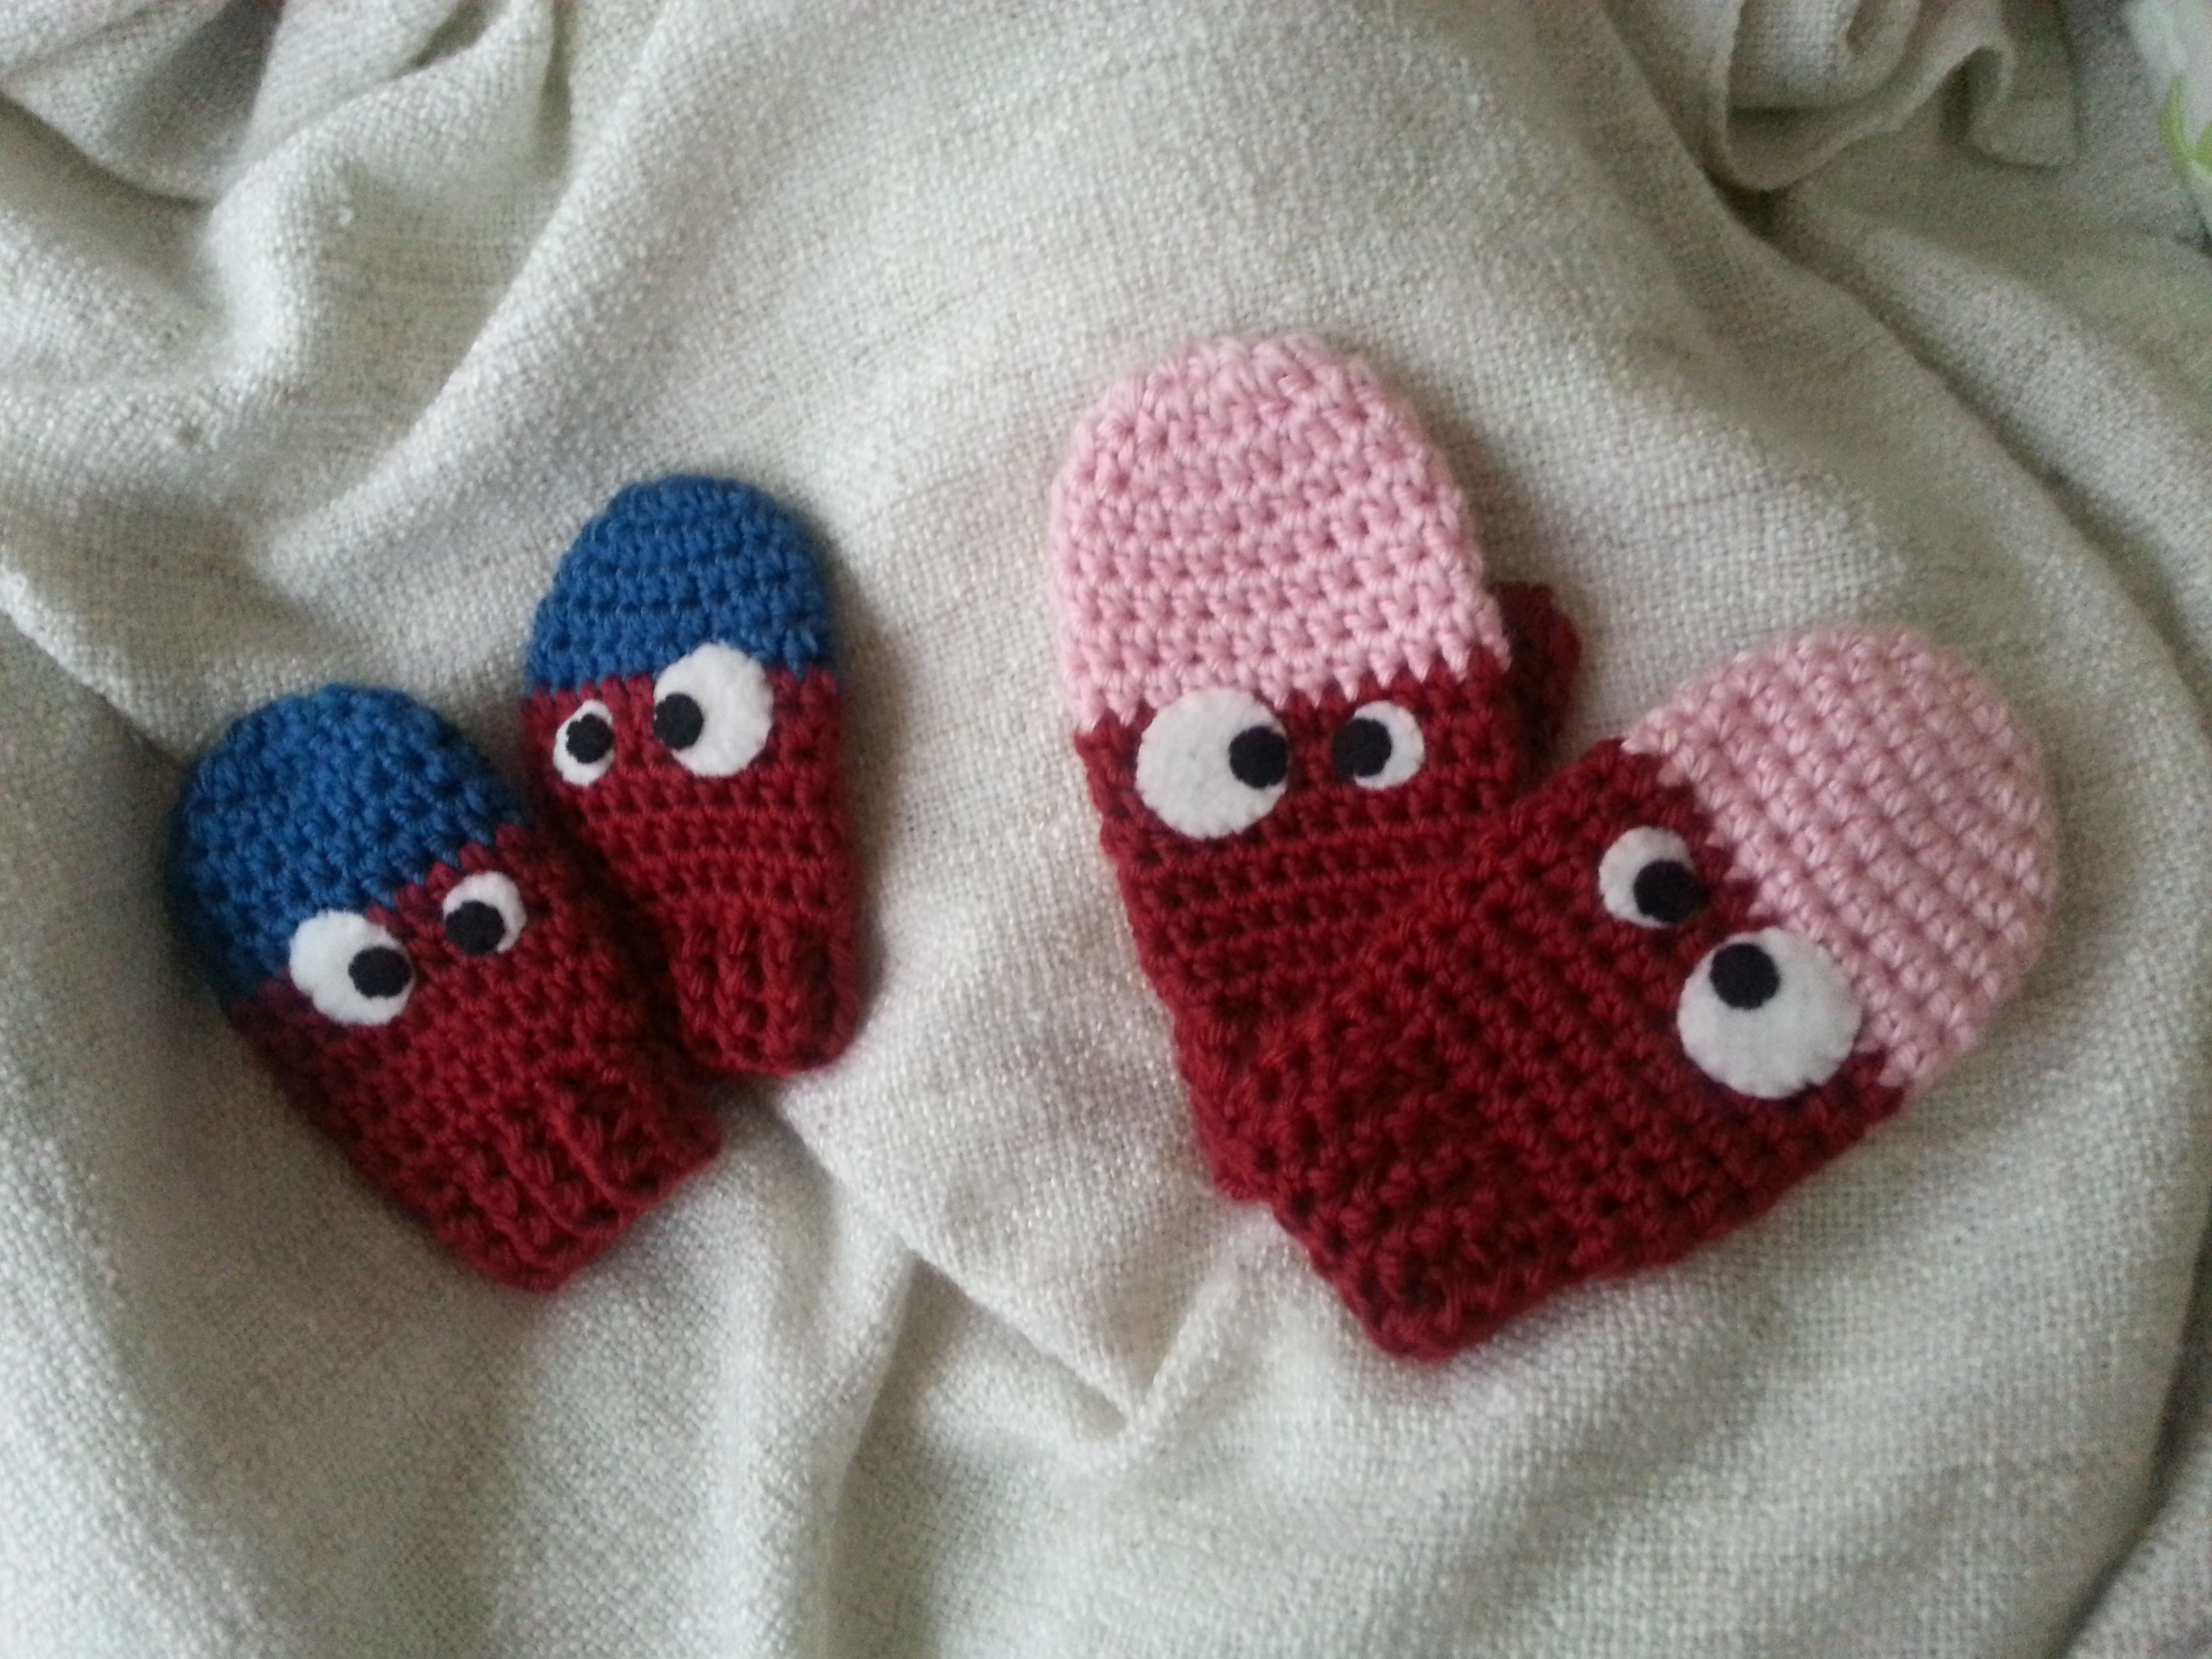 Free Crochet Pattern for Toddler Mittens - Monster Mittens | hats ...